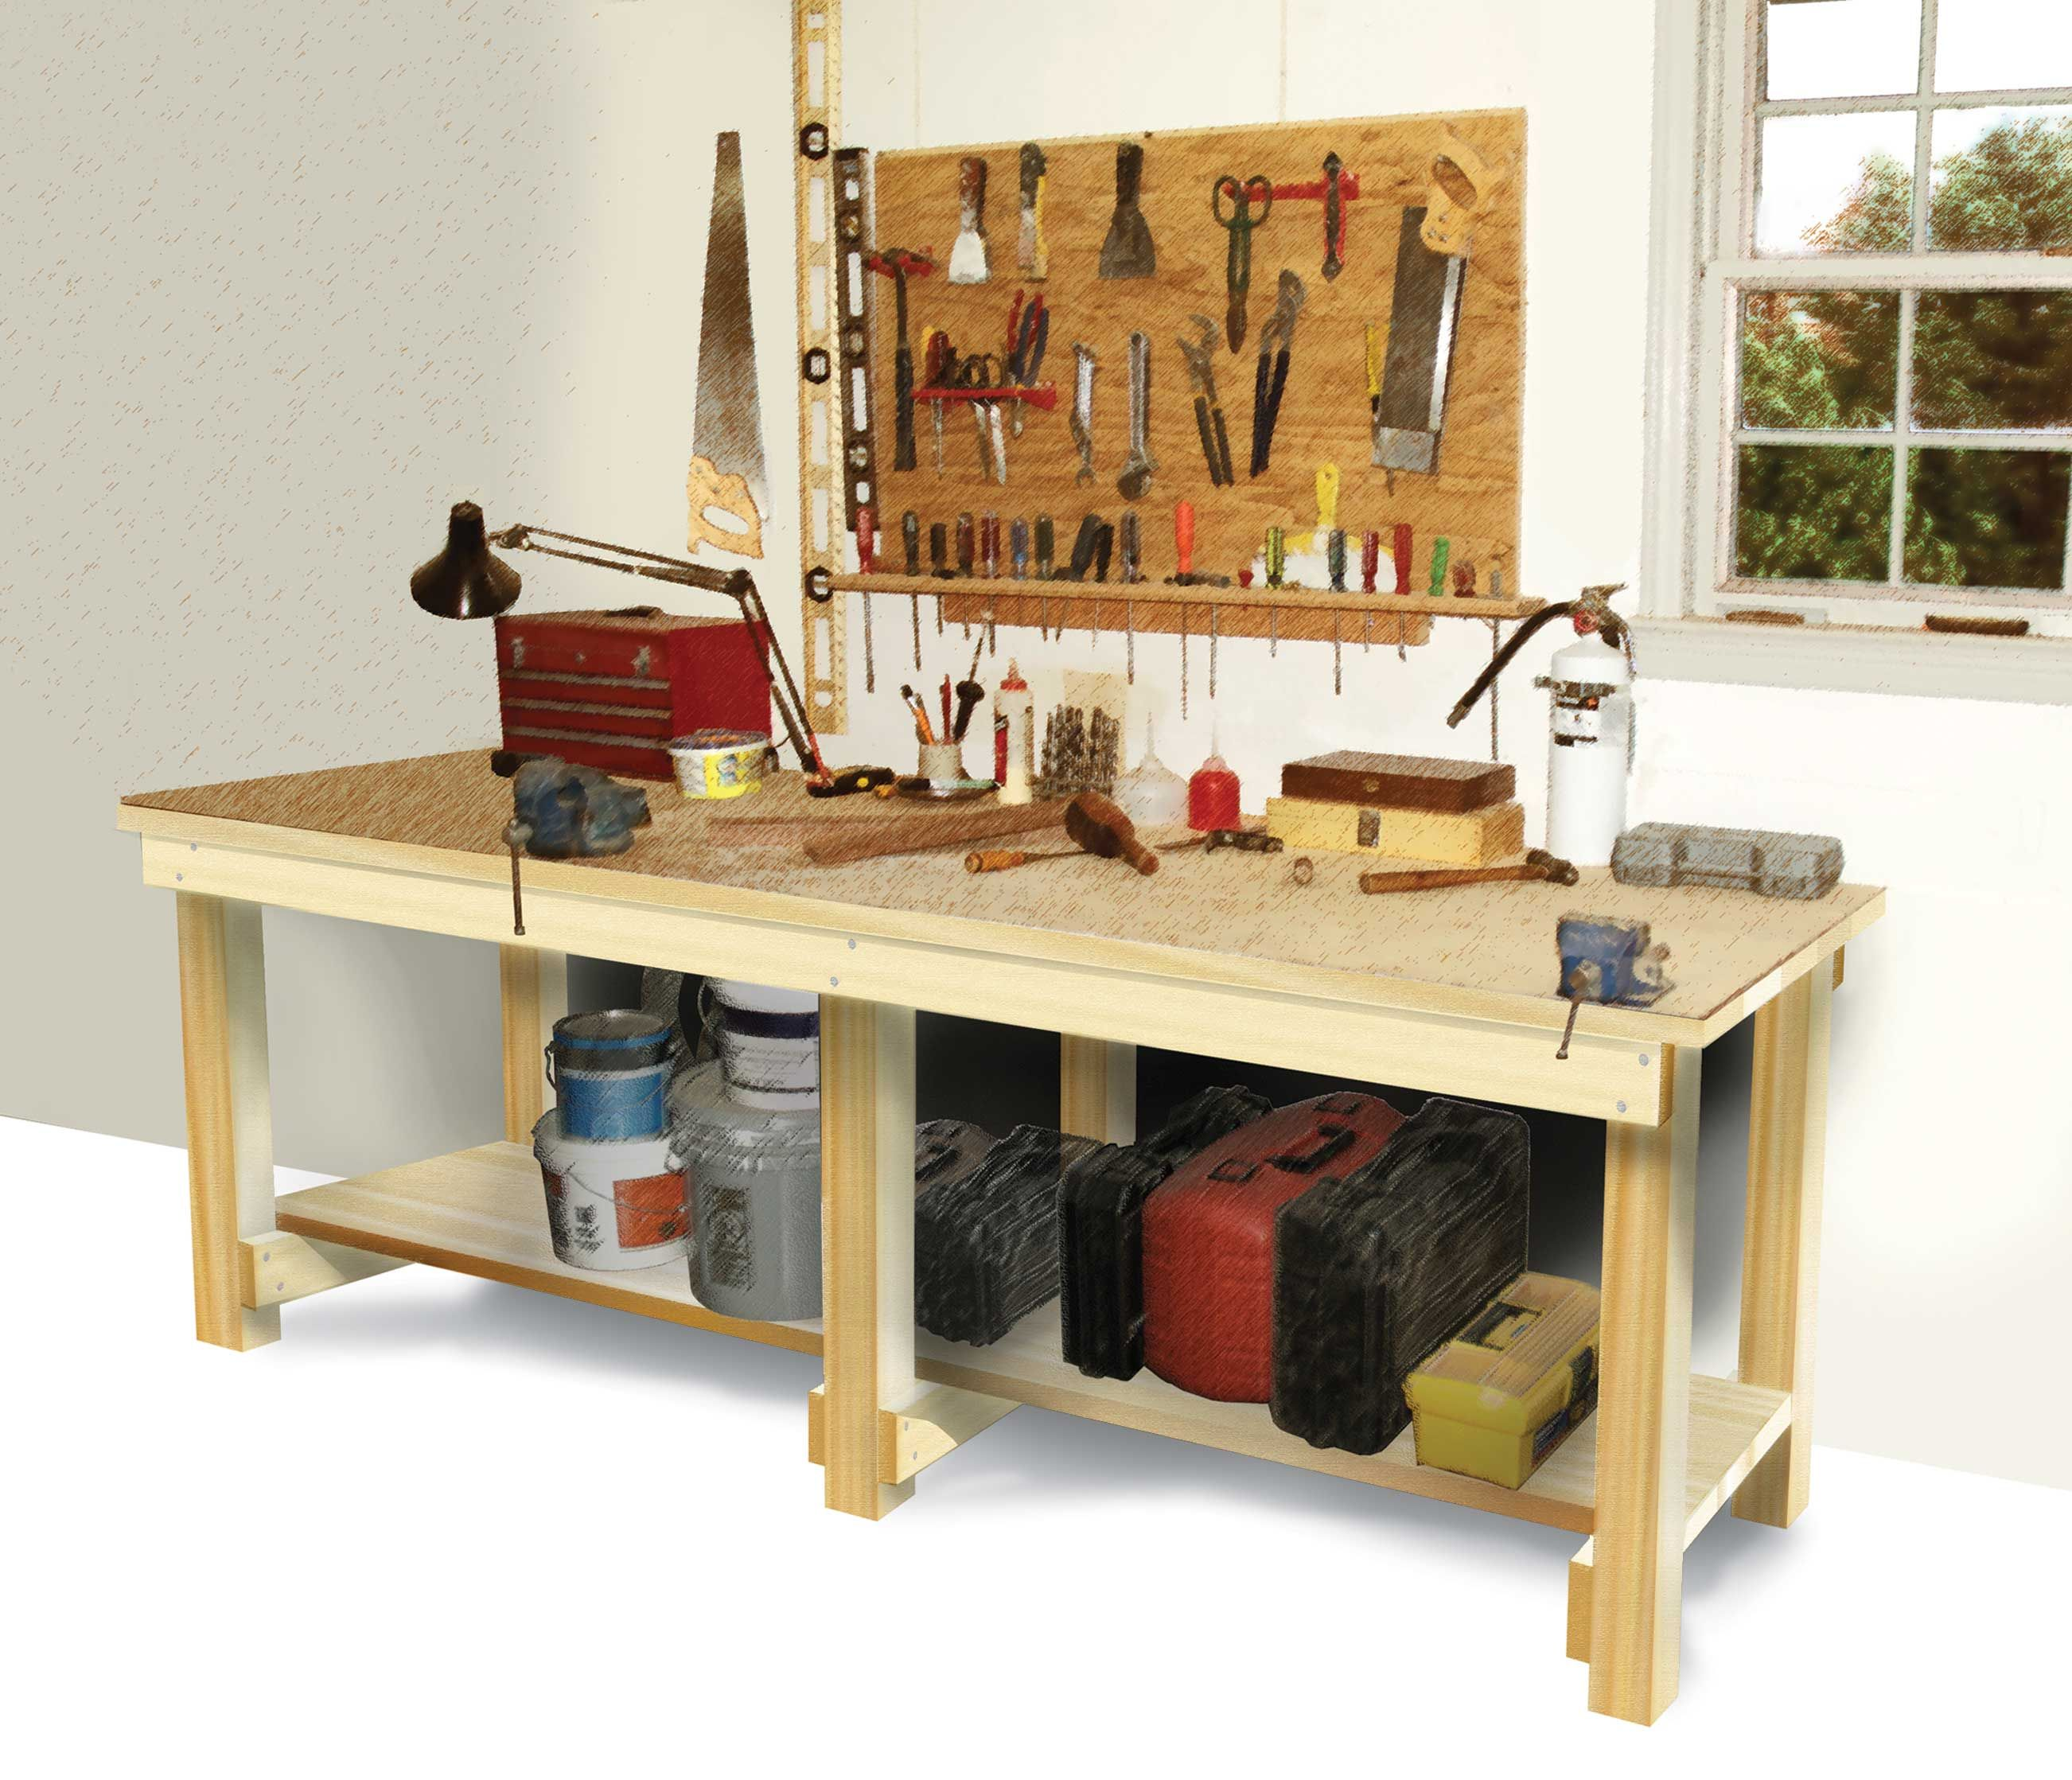 Tool Benches Garage : How to build a workbench diy plans easy